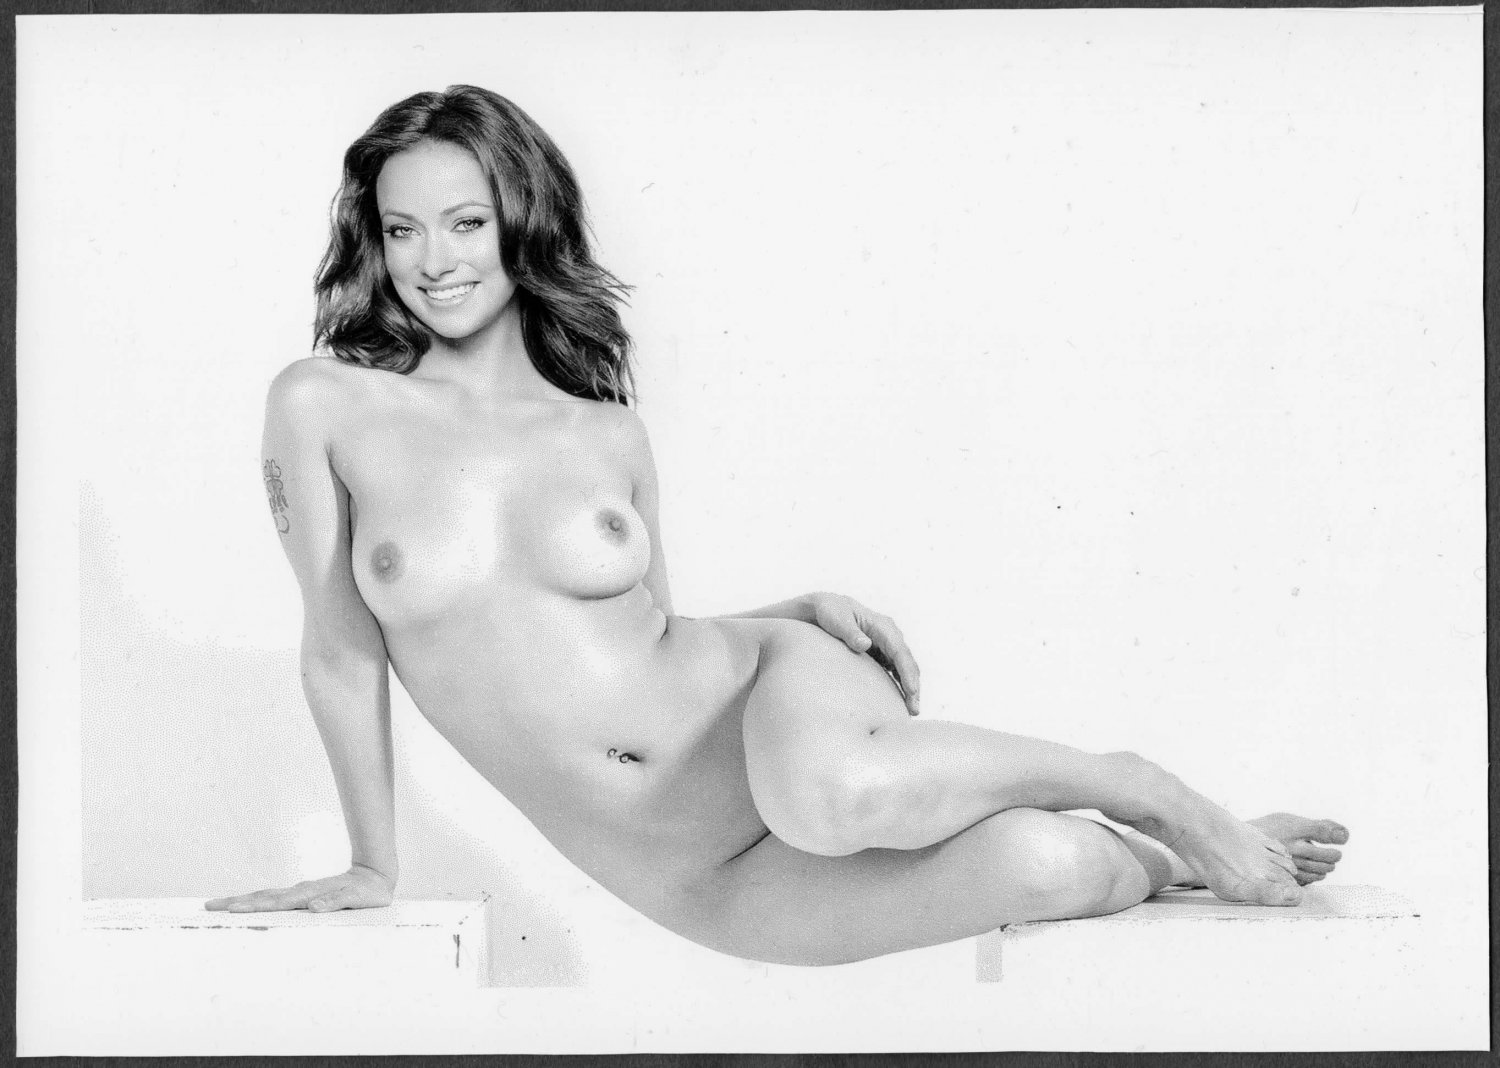 OLIVIA WILDE TOTALLY NUDE BIG LARGE BREASTS BARE PUSSY NEW REPRINT 5 X 7 #1